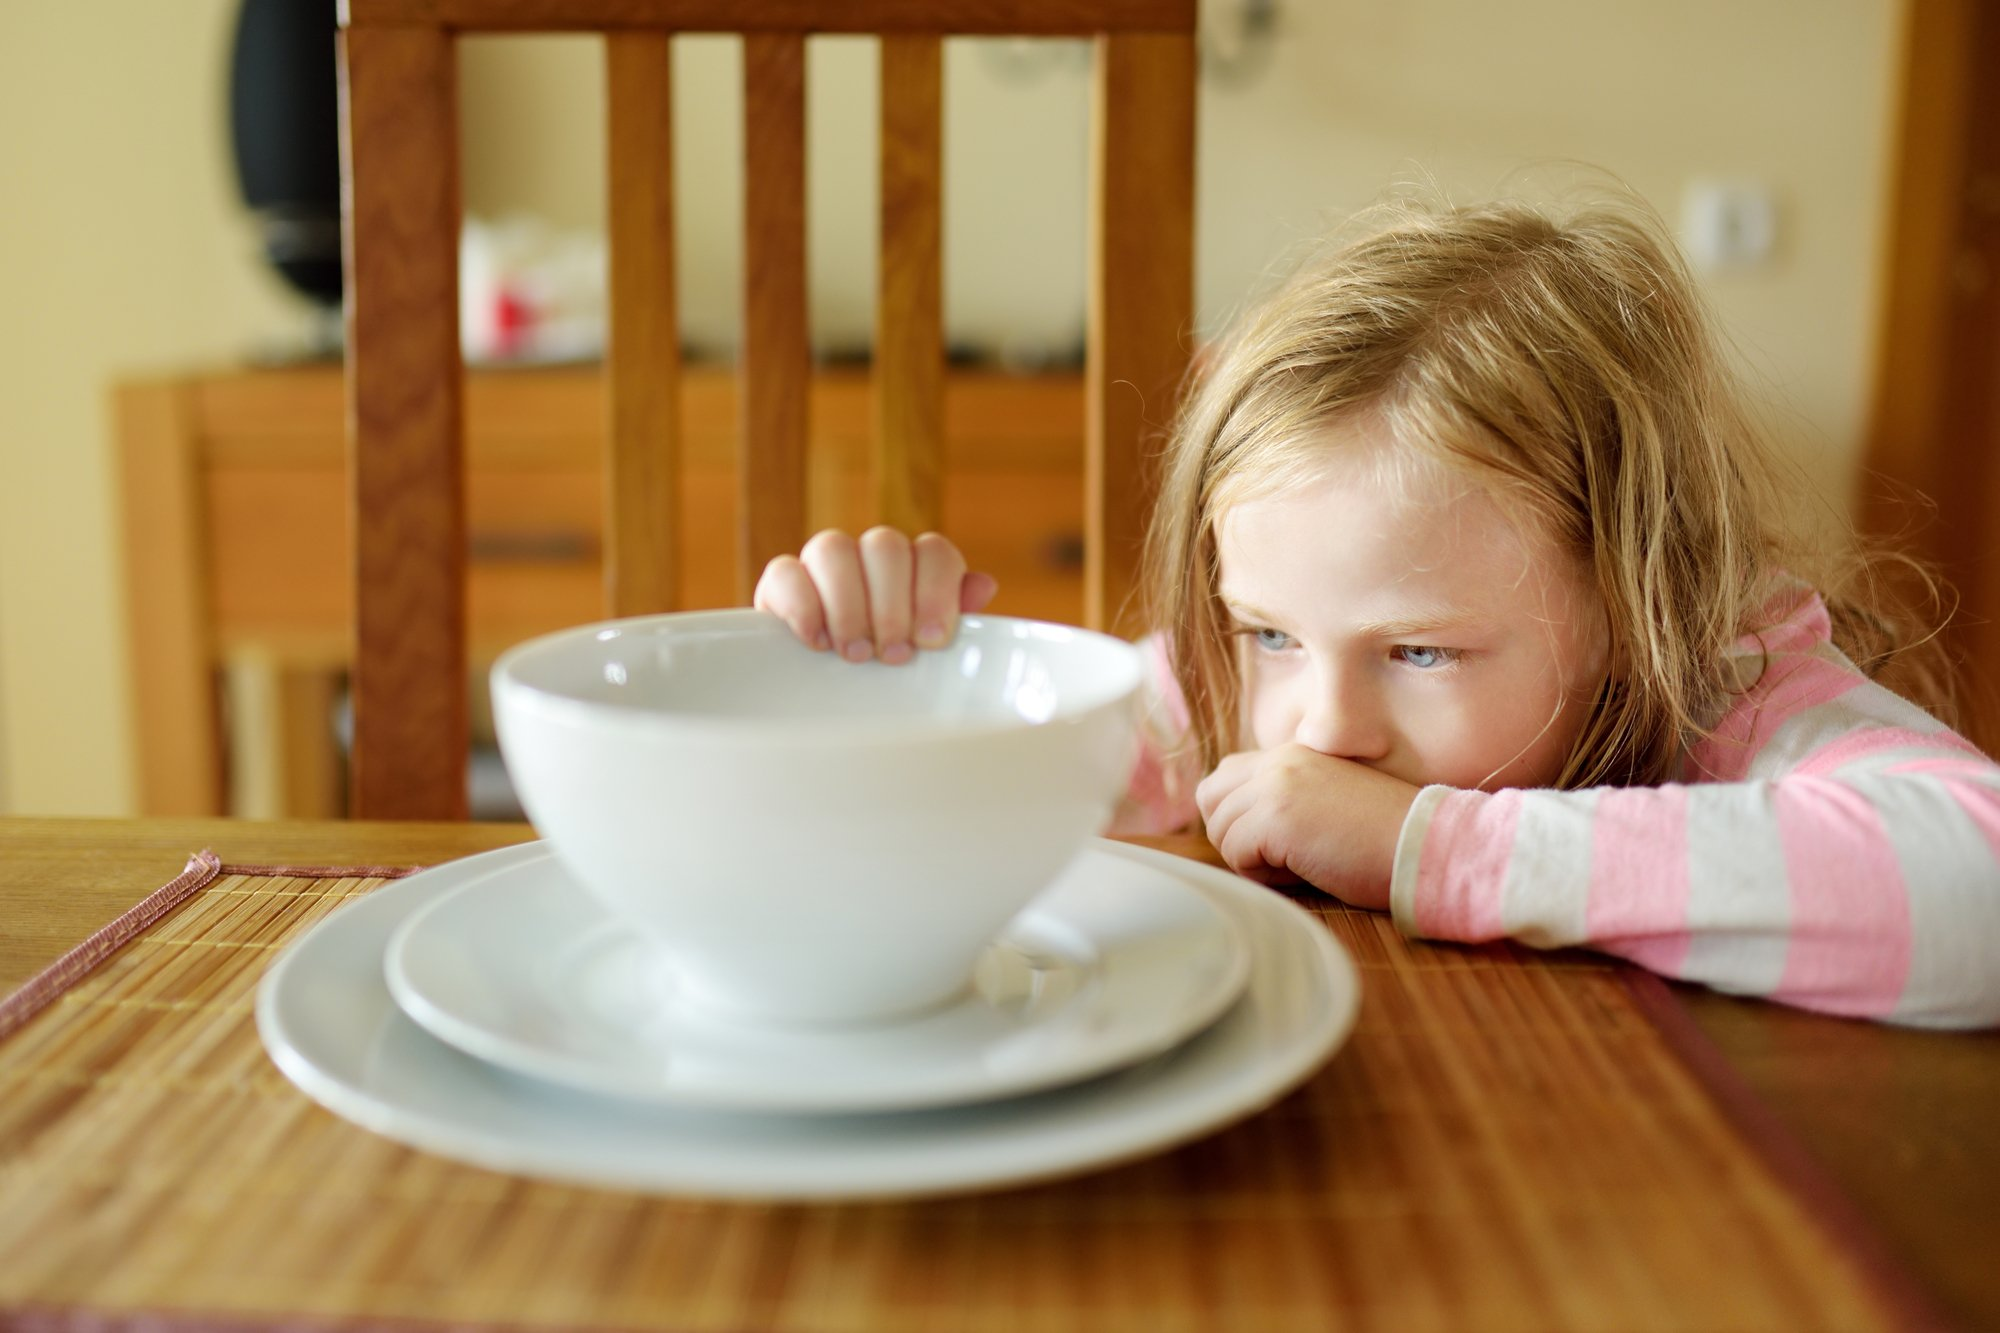 Recognizing Early Eating Disorder Symptoms in Children